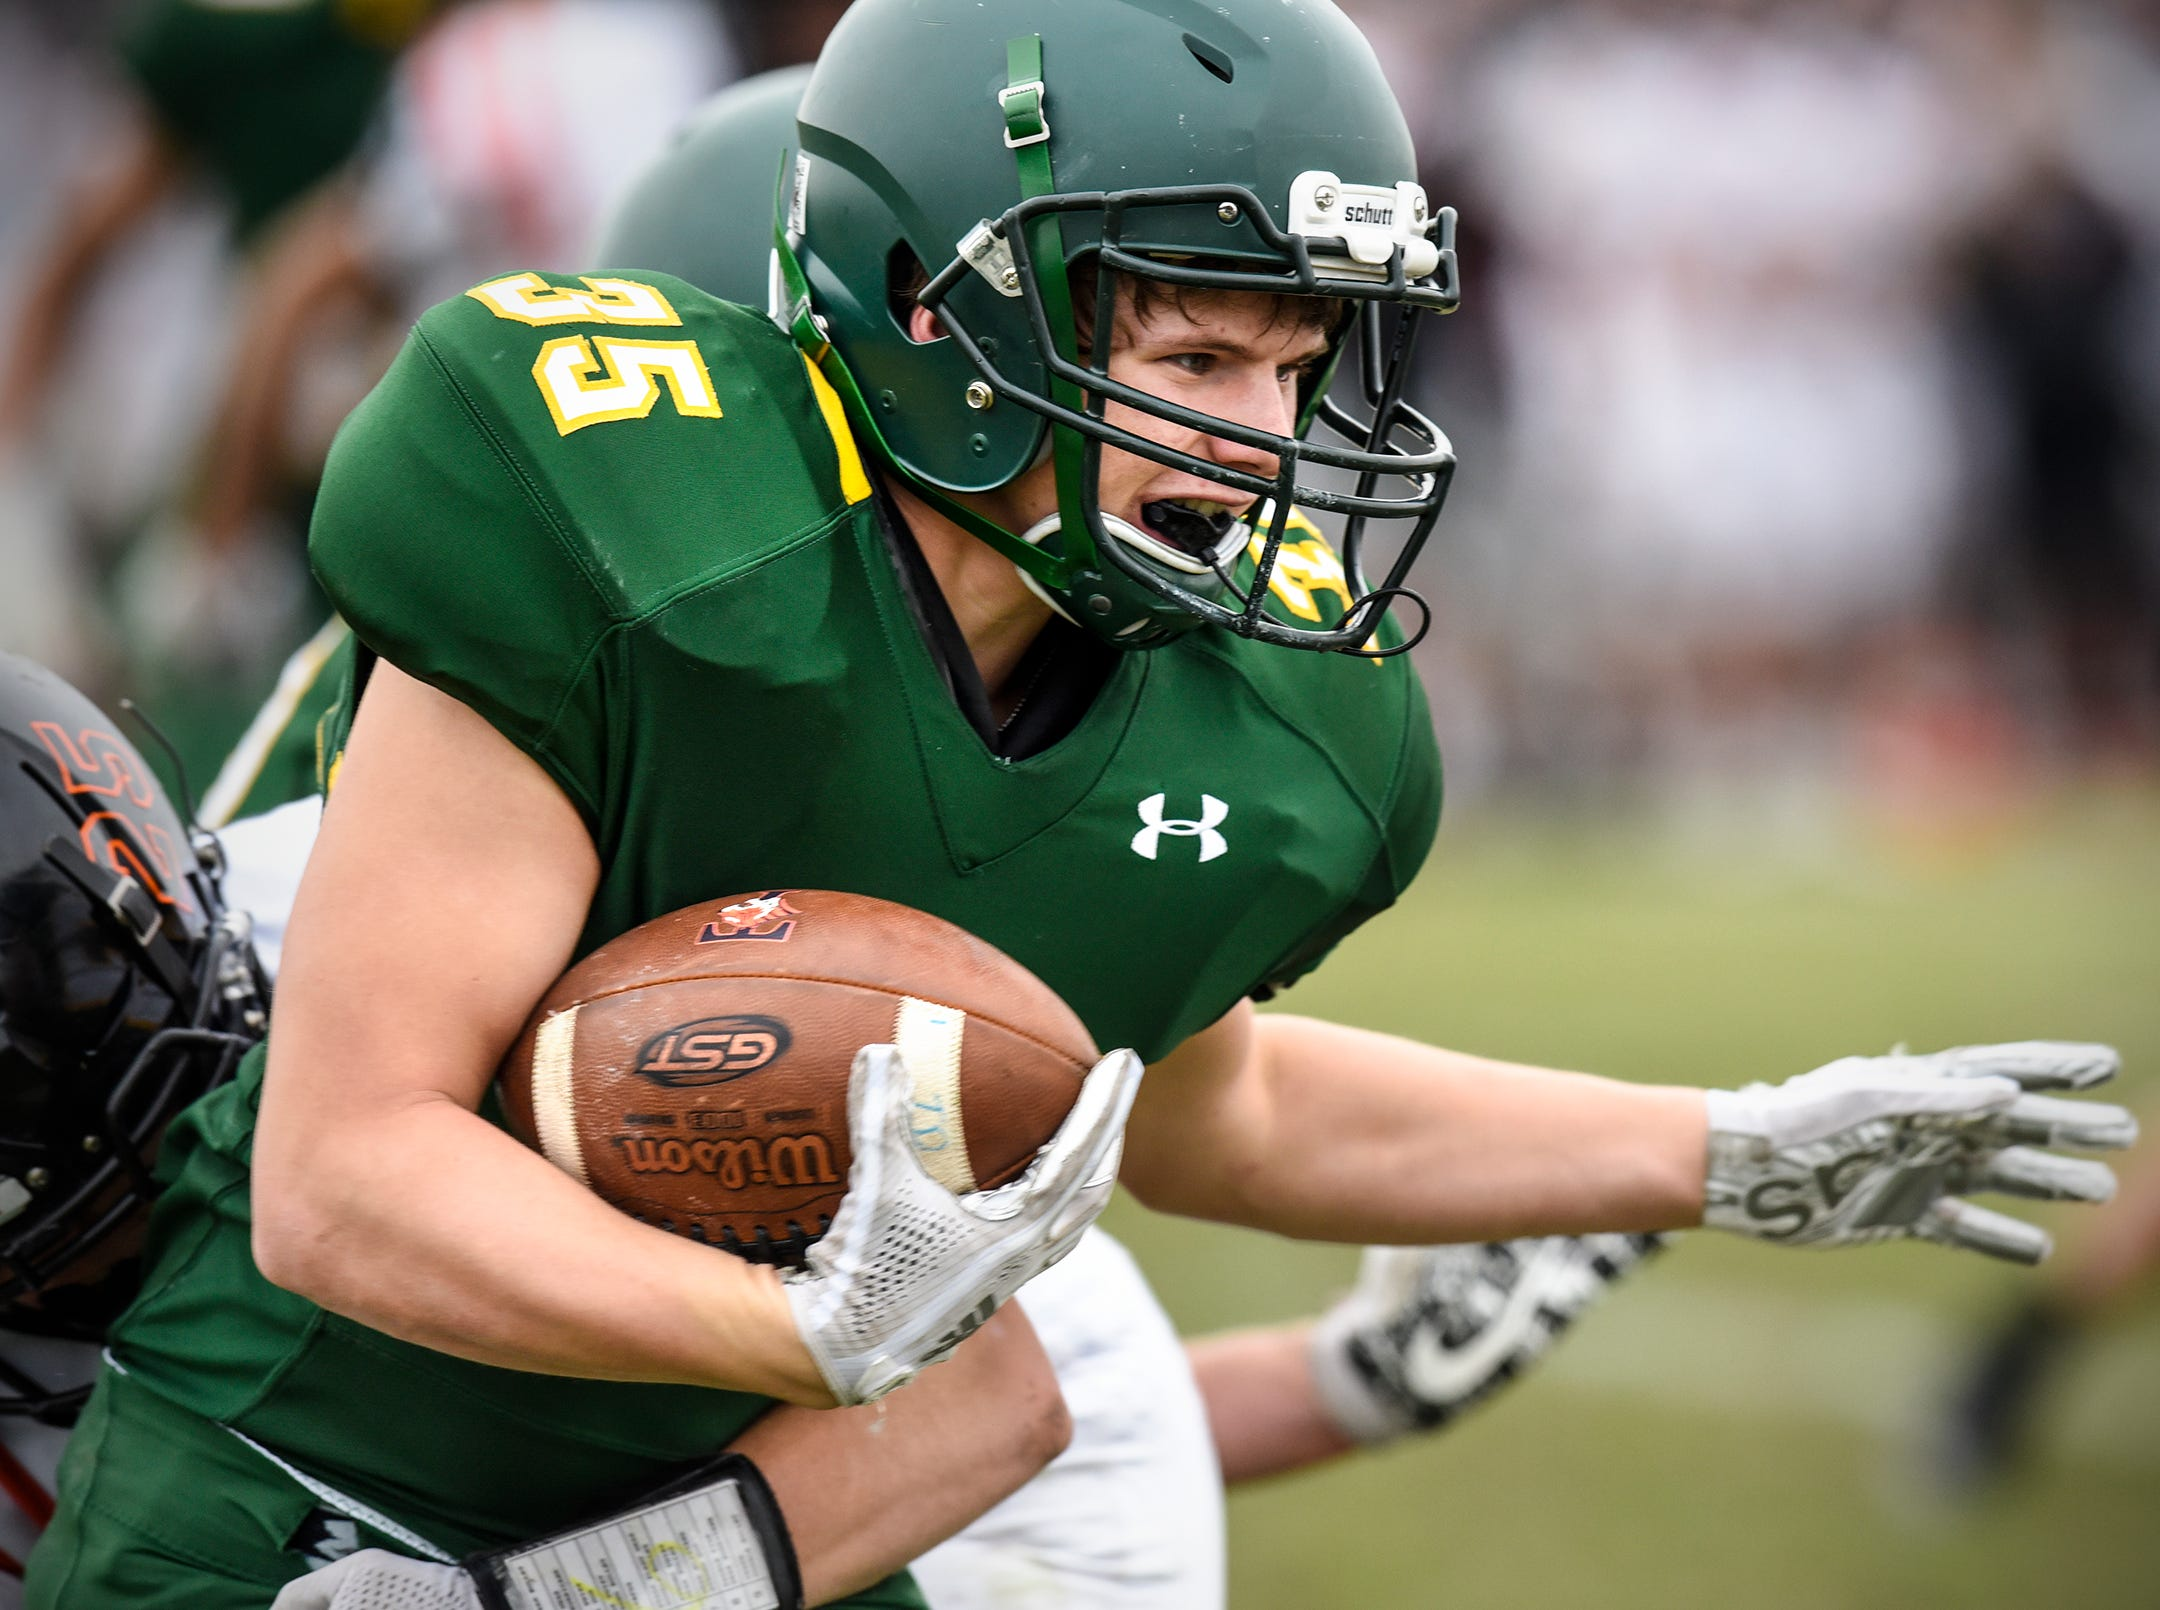 Zach Storms carries the ball for Sauk Rapids in the second half of the Saturday, Oct. 27,Section 6-5A semifinal game against Tech in Sauk Rapids. Storms caught a pass from quarterback Cade Milton-Baumgardner with 5.9 seconds left in the fourth quarter to give the Storm a 20-16 win.